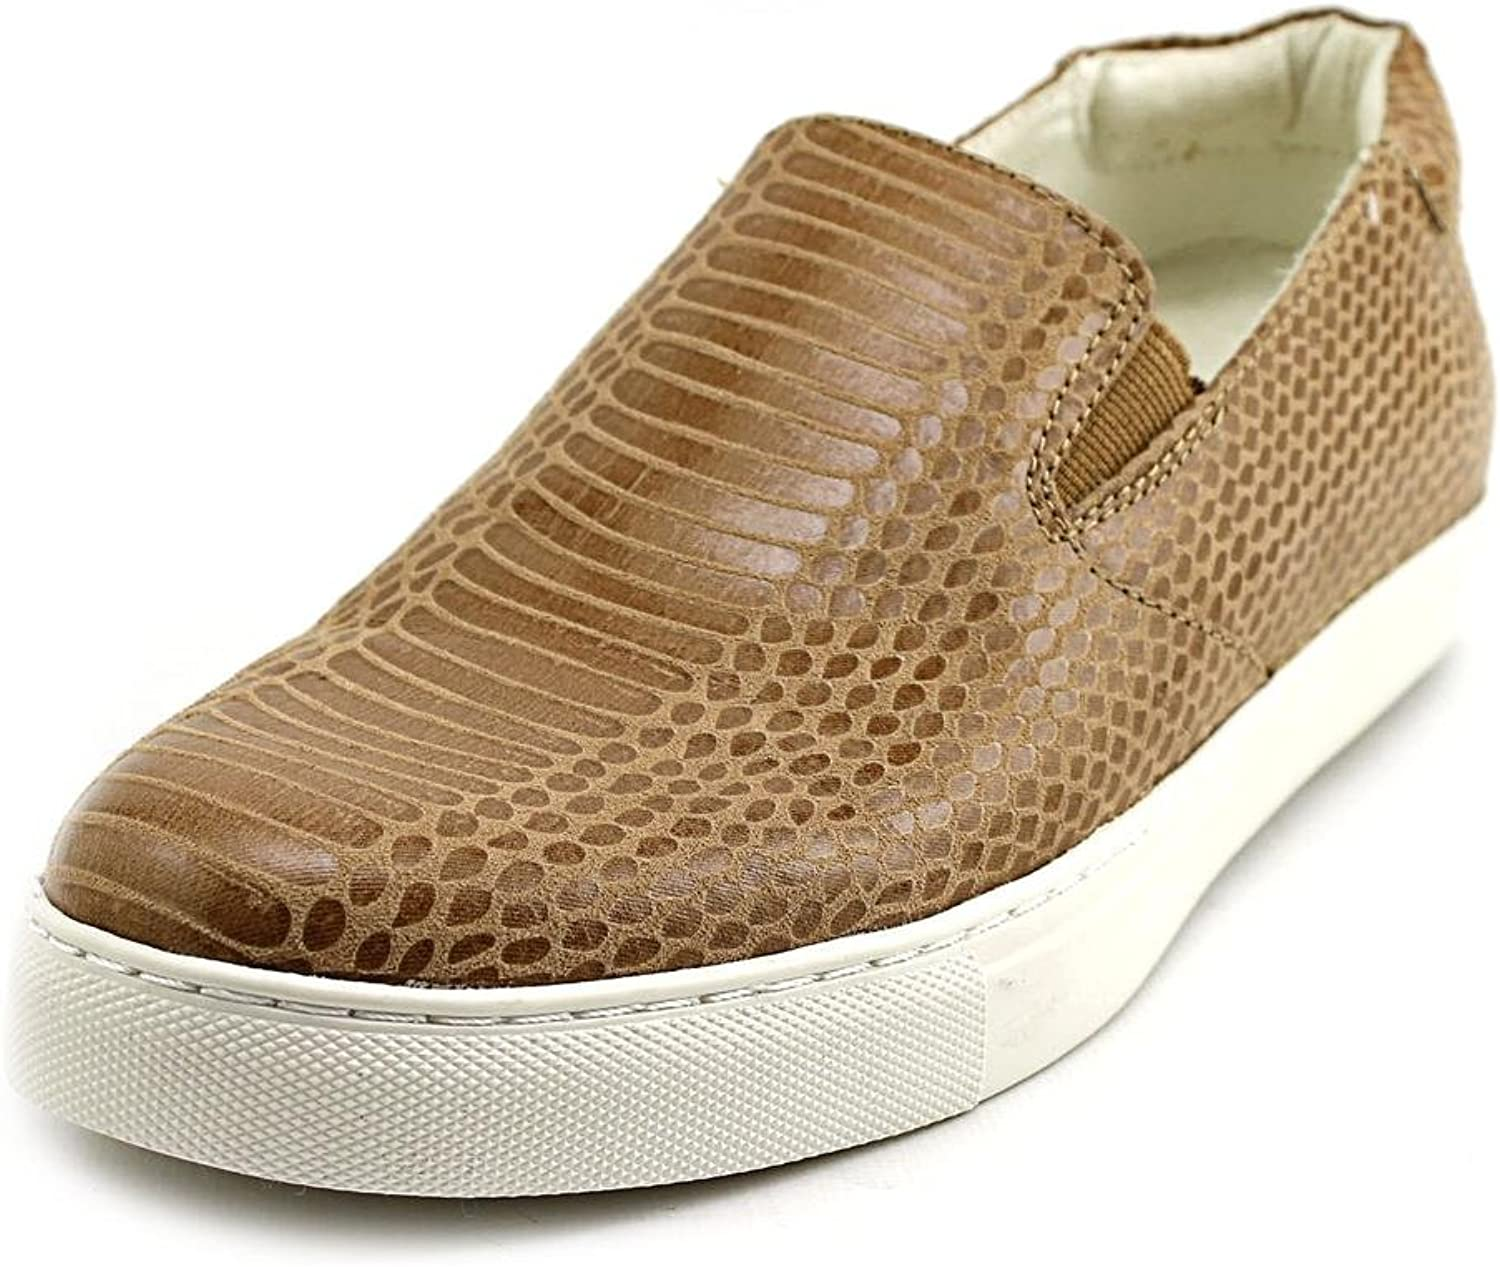 Kenneth Cole Womens Kit Sy Loafer Sneaker shoes Camel (9.5)